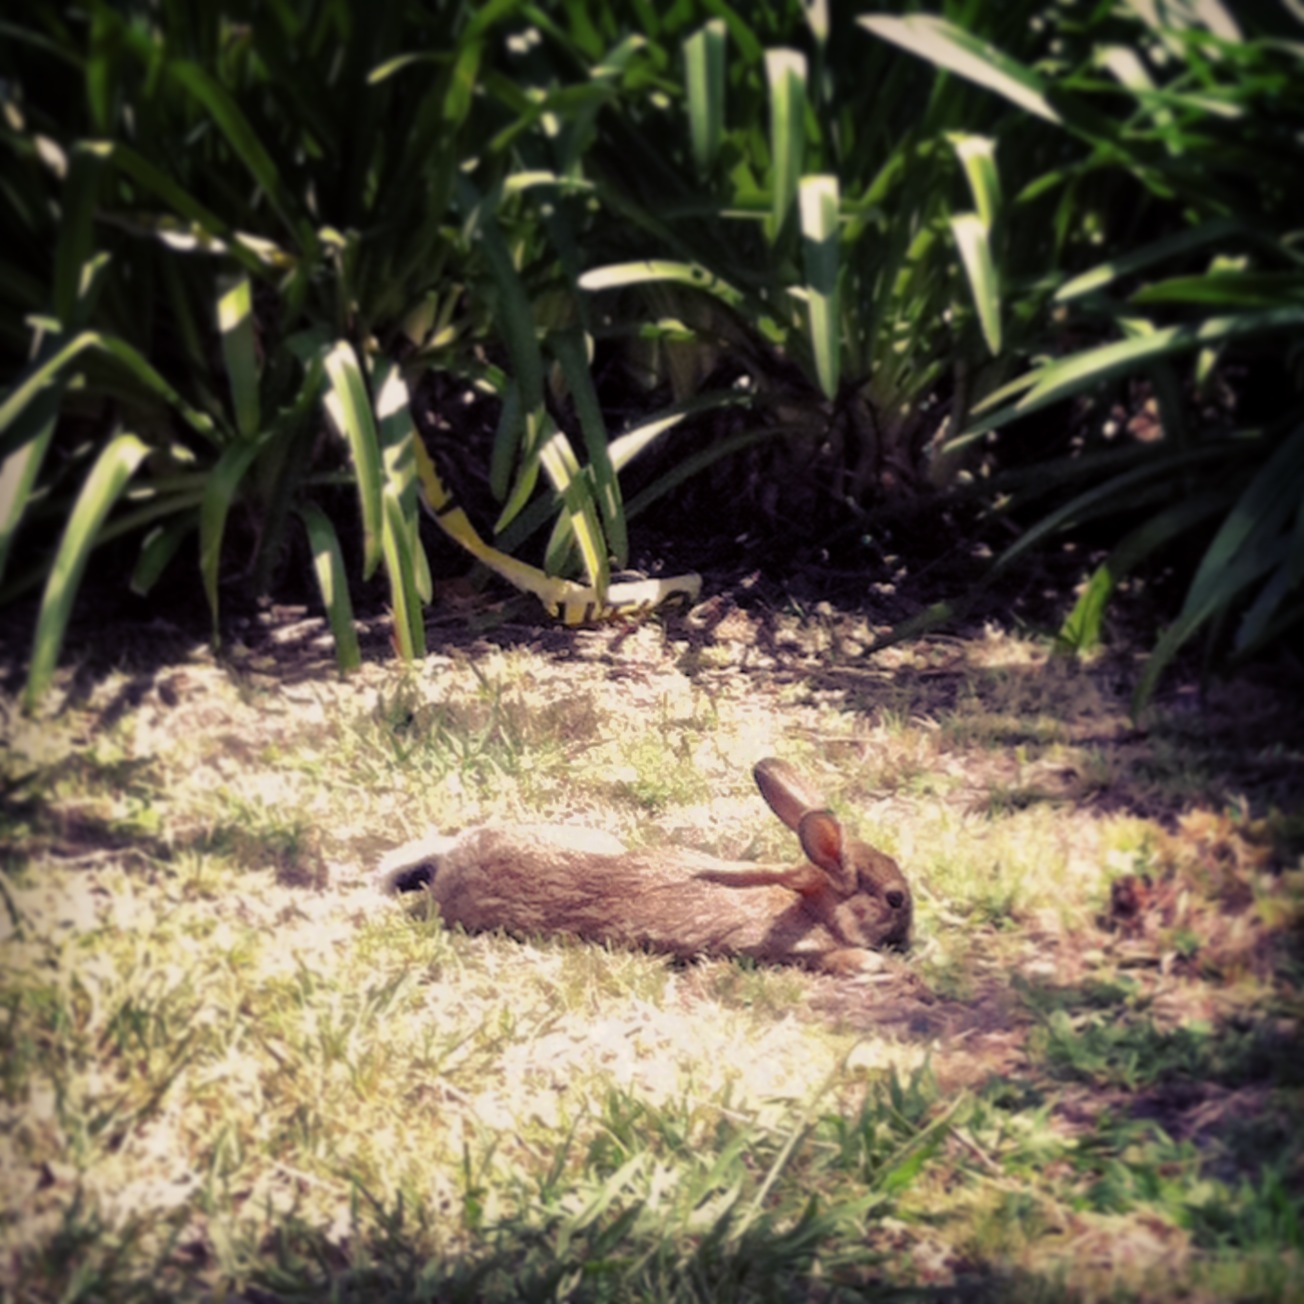 We caught this little cutie sun bathing in the vineyard. What a life!